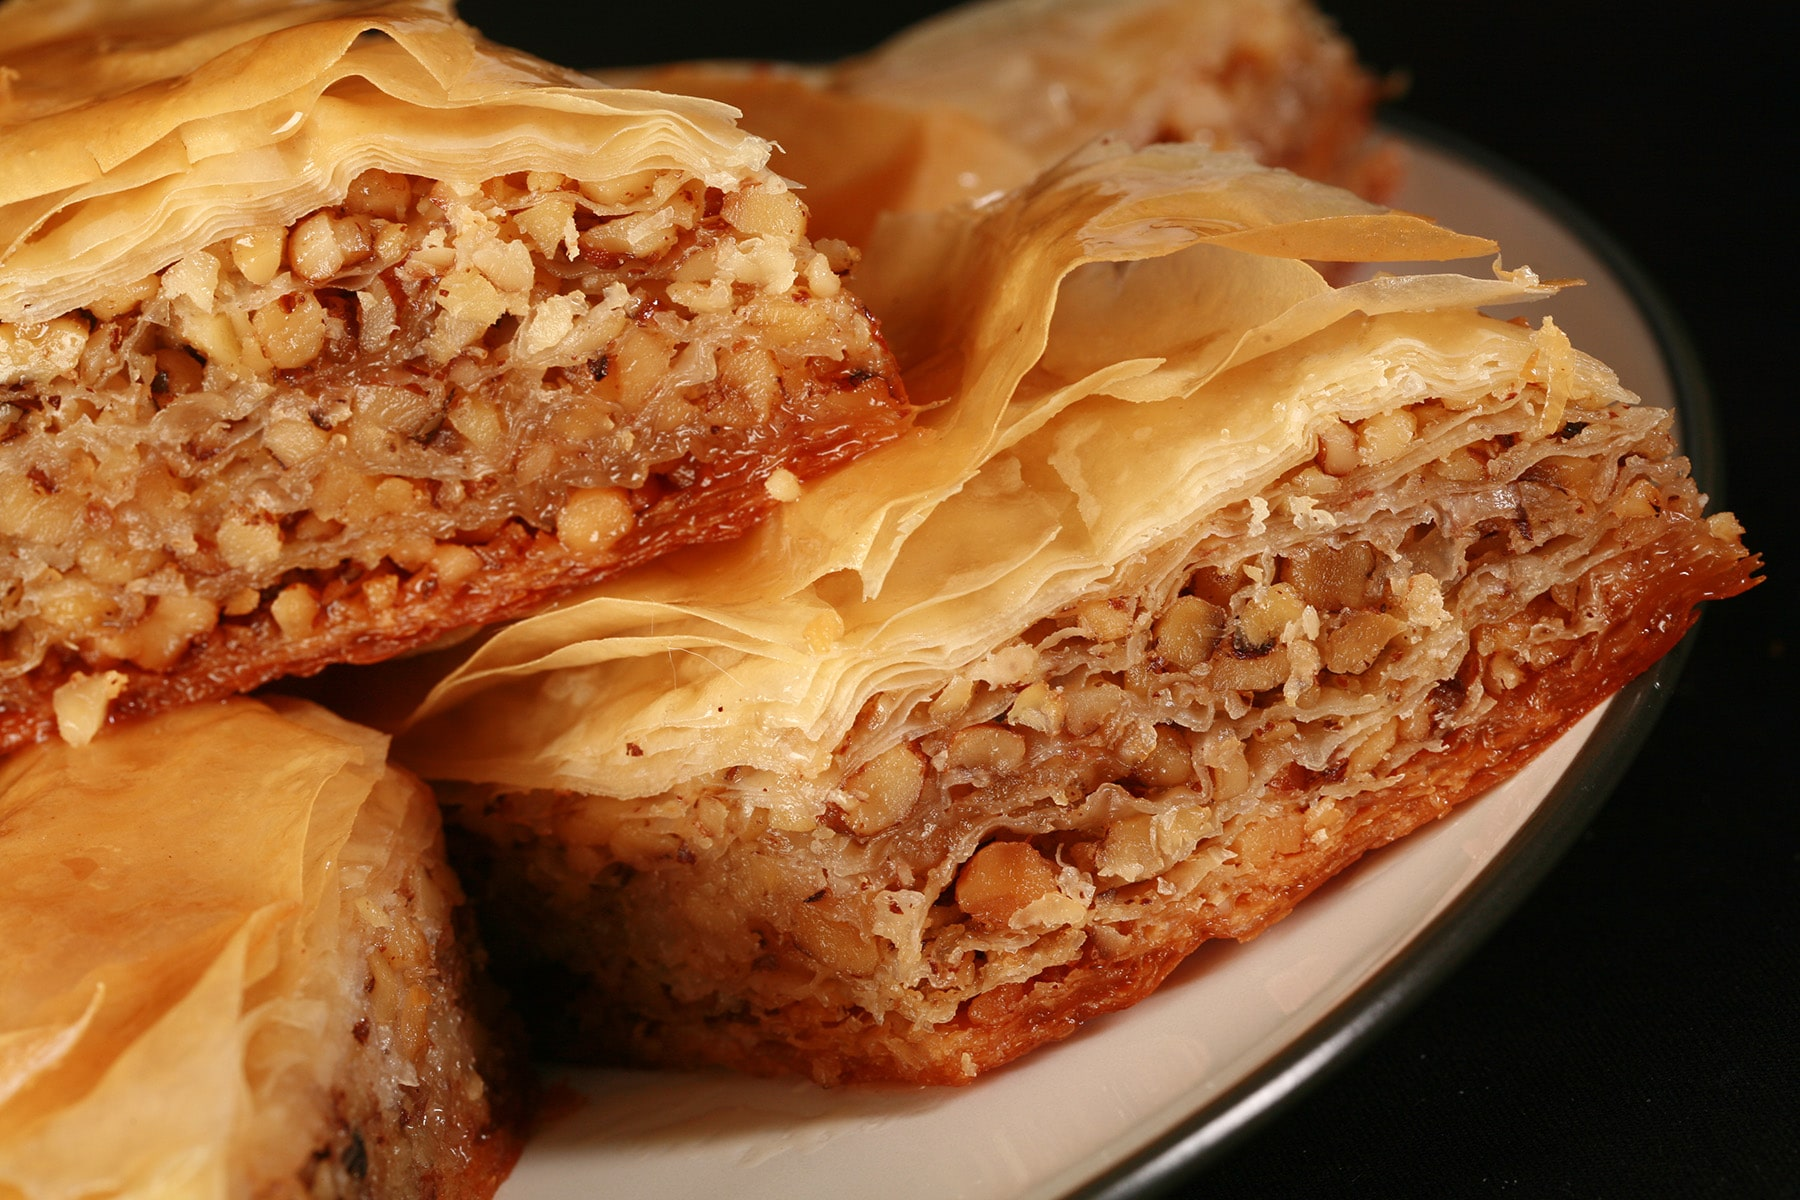 A close up view of a diamond shaped maple walnut baklava on a small white plate.